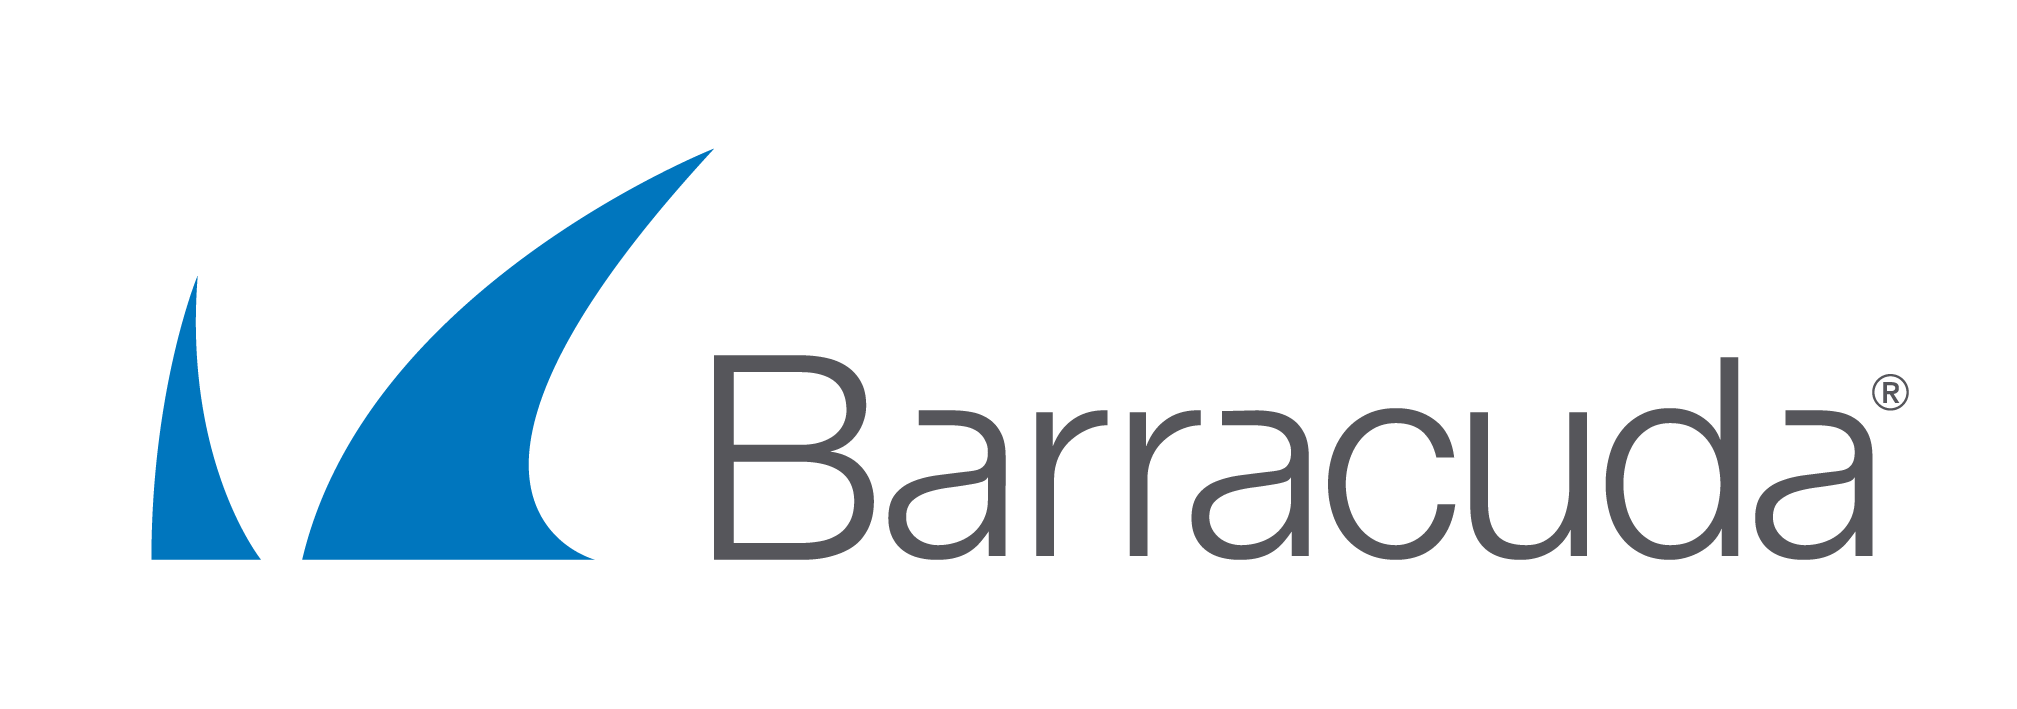 Barracuda Archiving logo